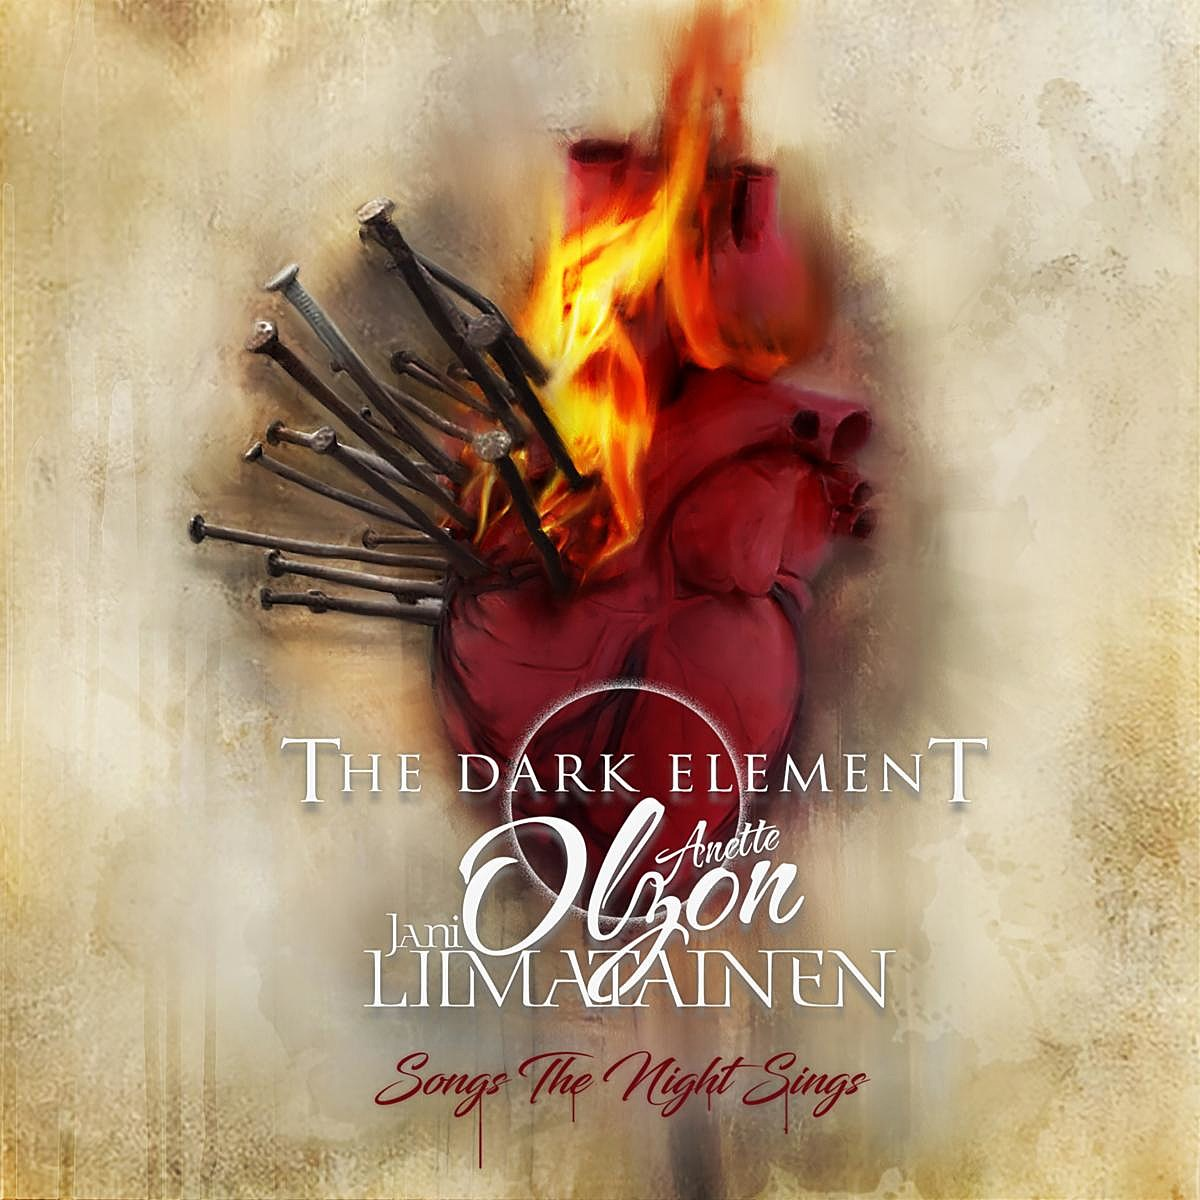 The Dark Element Announce 'Songs the Night Sings' Album